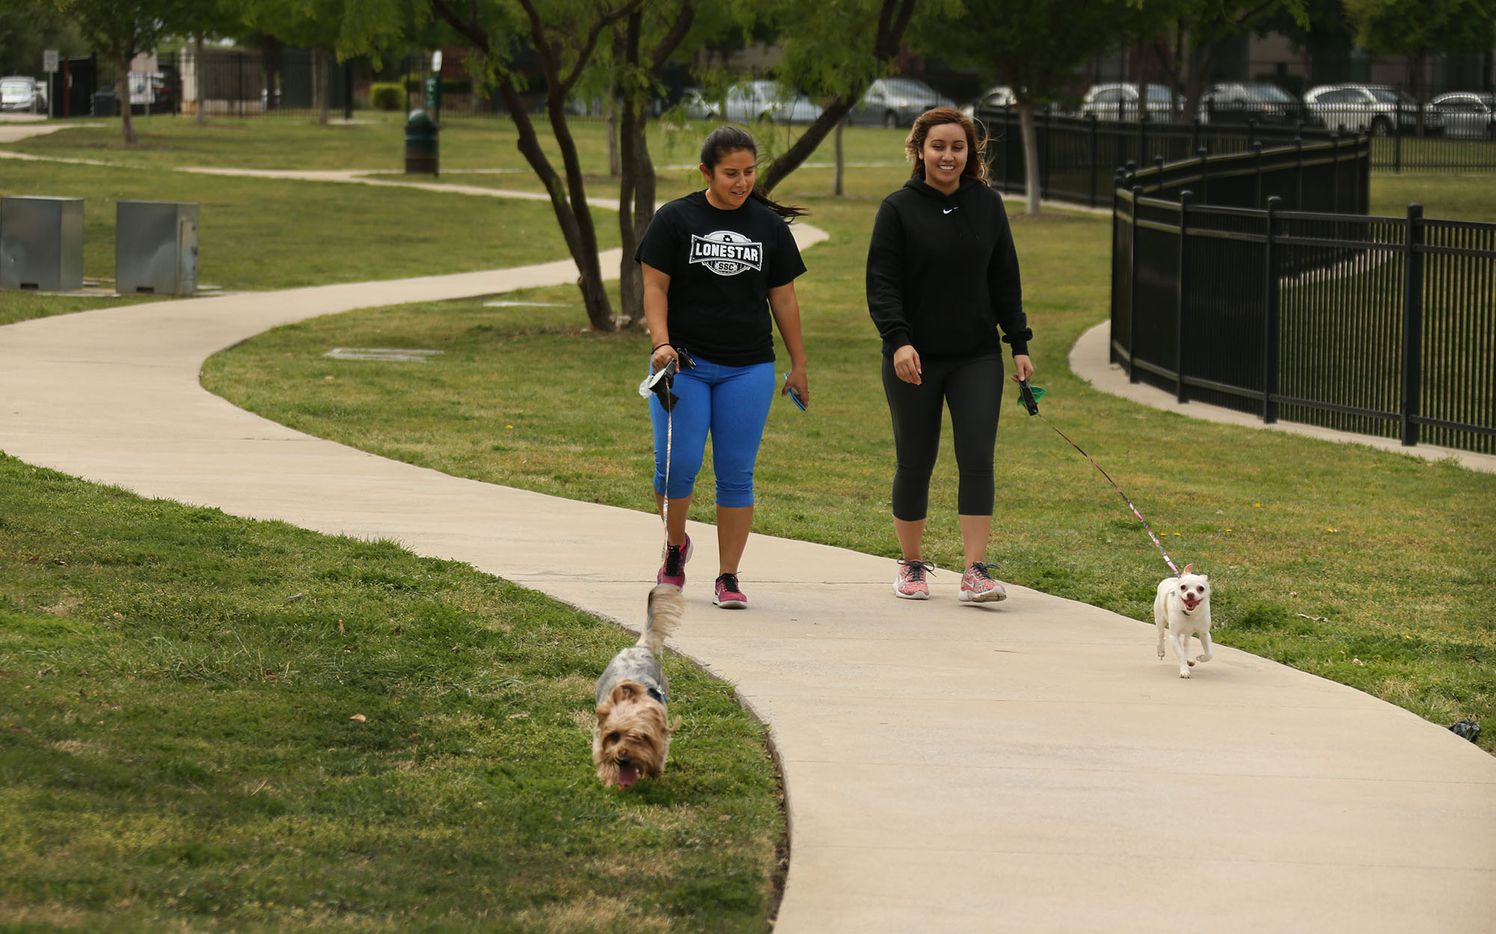 A mild afternoon is the perfect setting for a leisurely stroll to NorthBark Dog Park, located near the intersection of the Dallas North Tollway and the Bush Toll Road, photographed on Saturday, April 1, 2017.